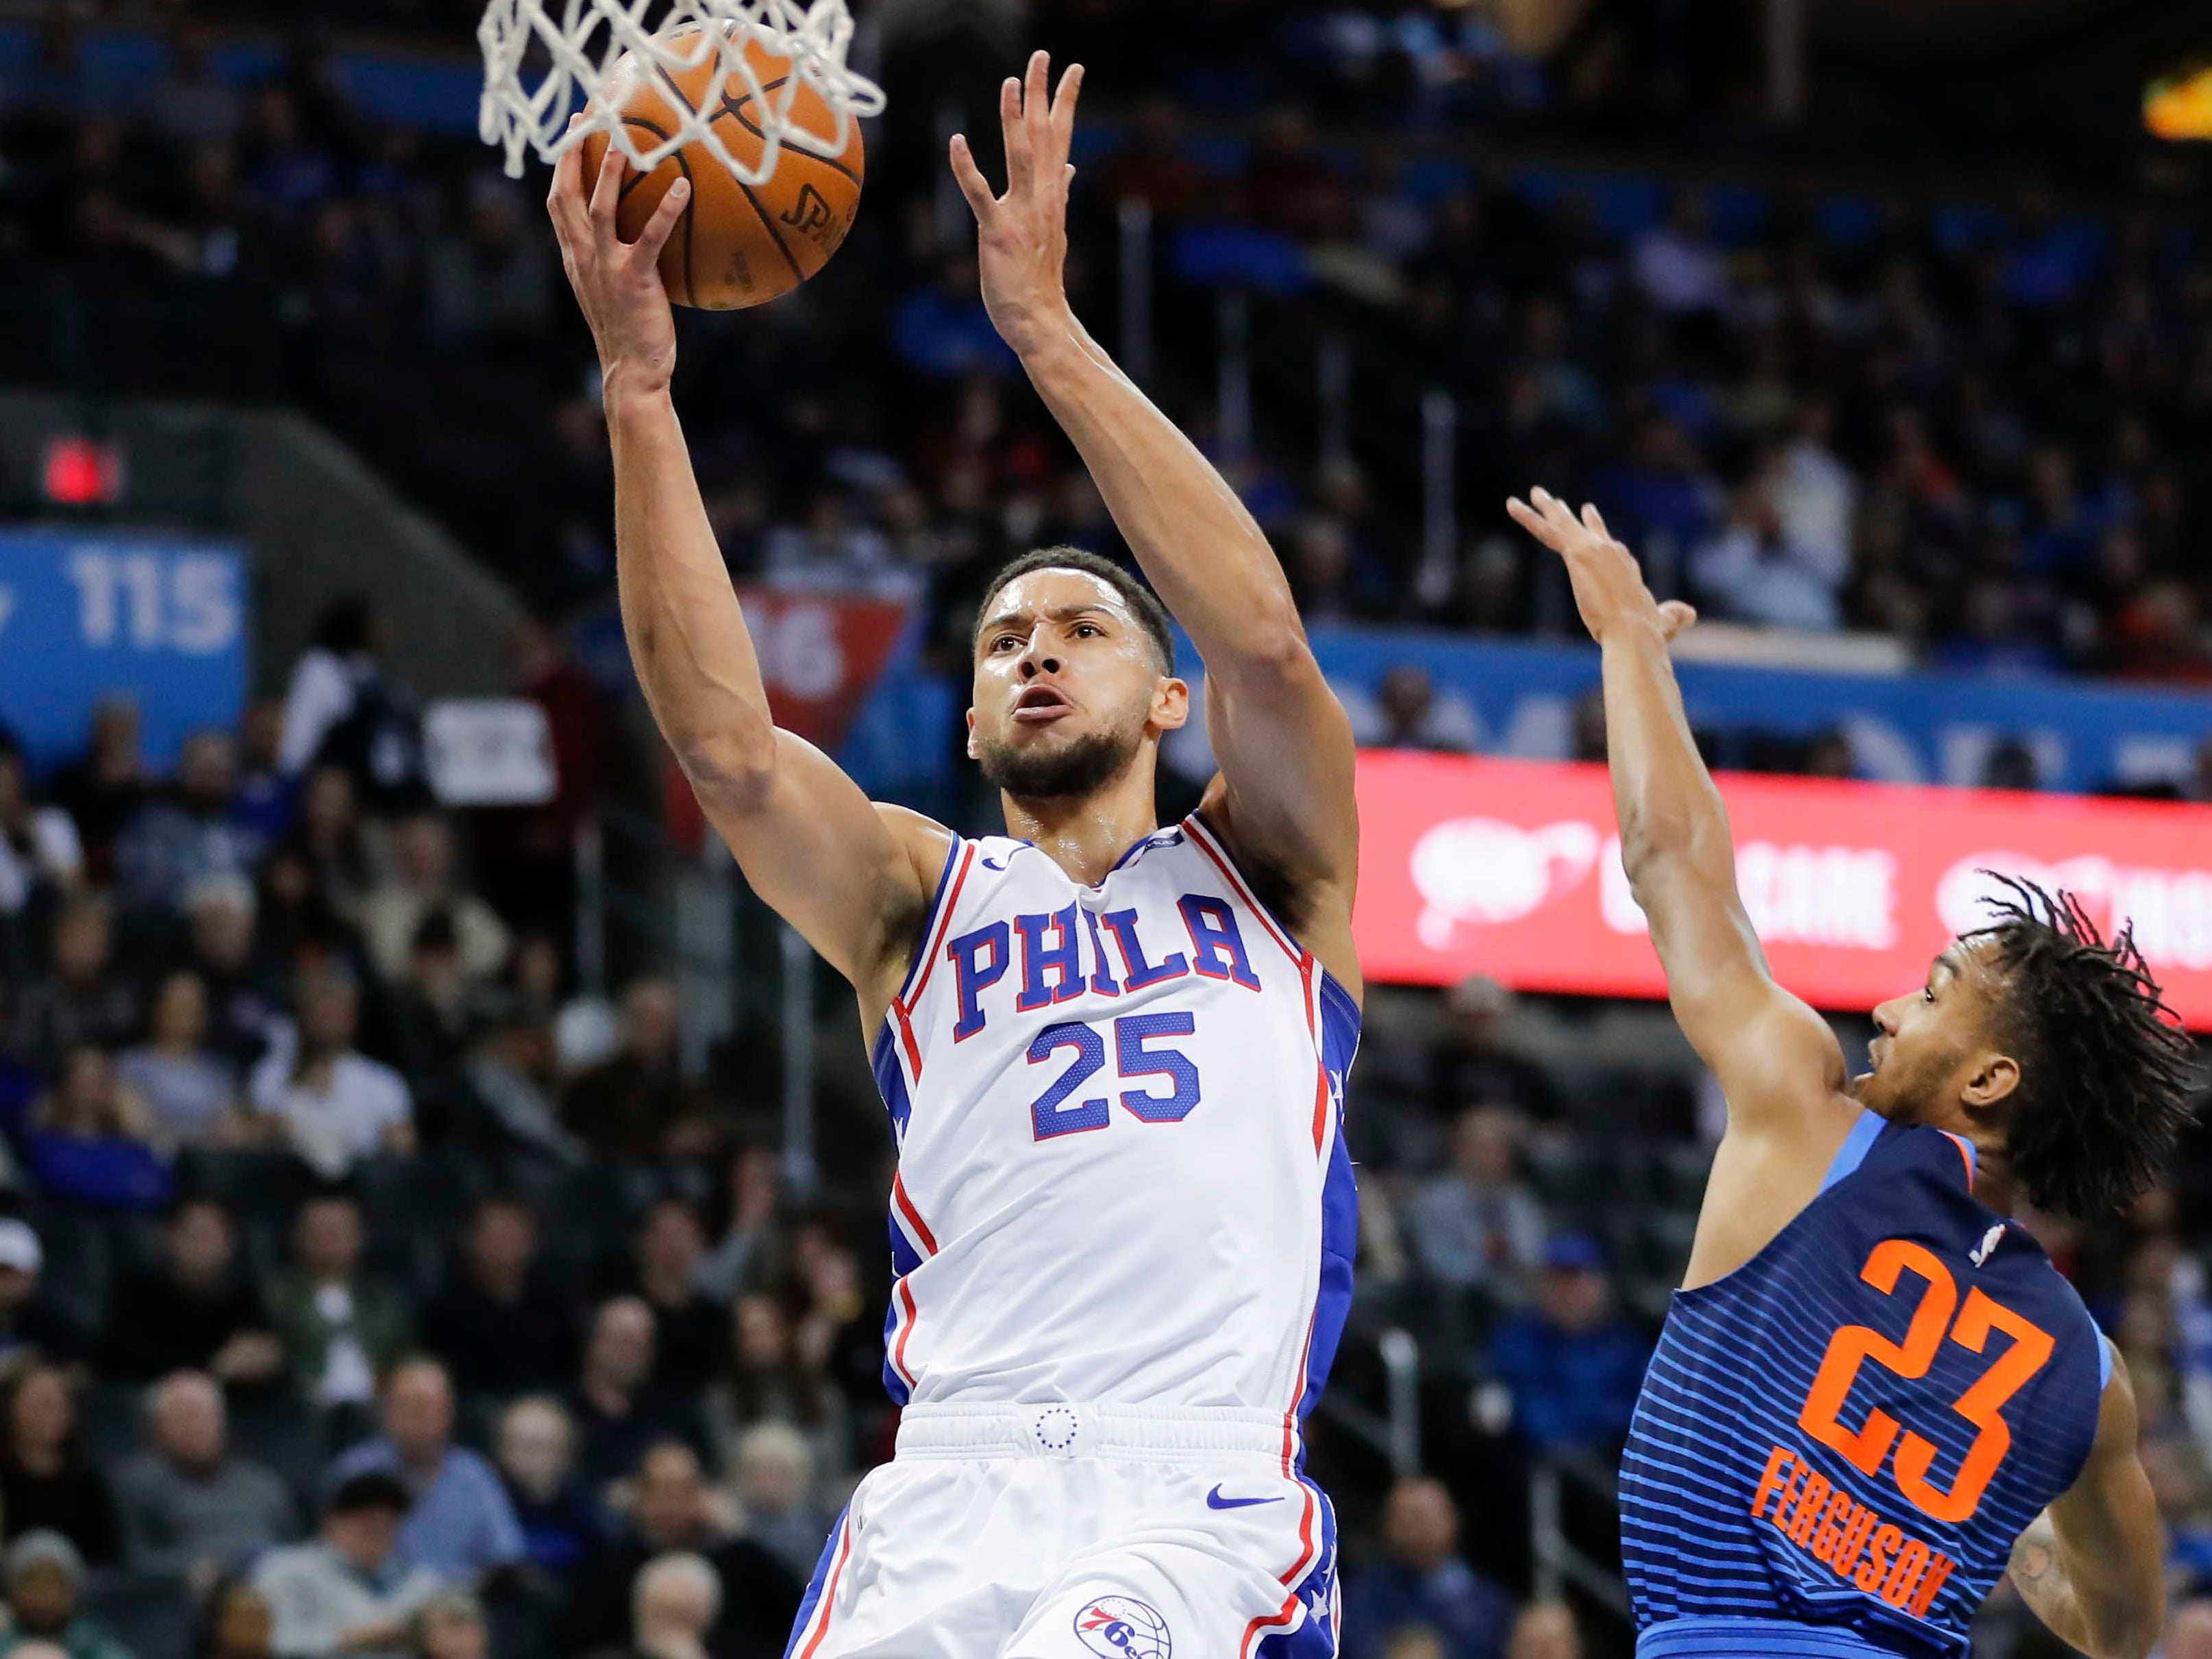 91. Ben Simmons, 76ers (Feb. 28): 11 points, 13 rebounds, 11 assist in 108-104 win over Thunder (ninth of season).